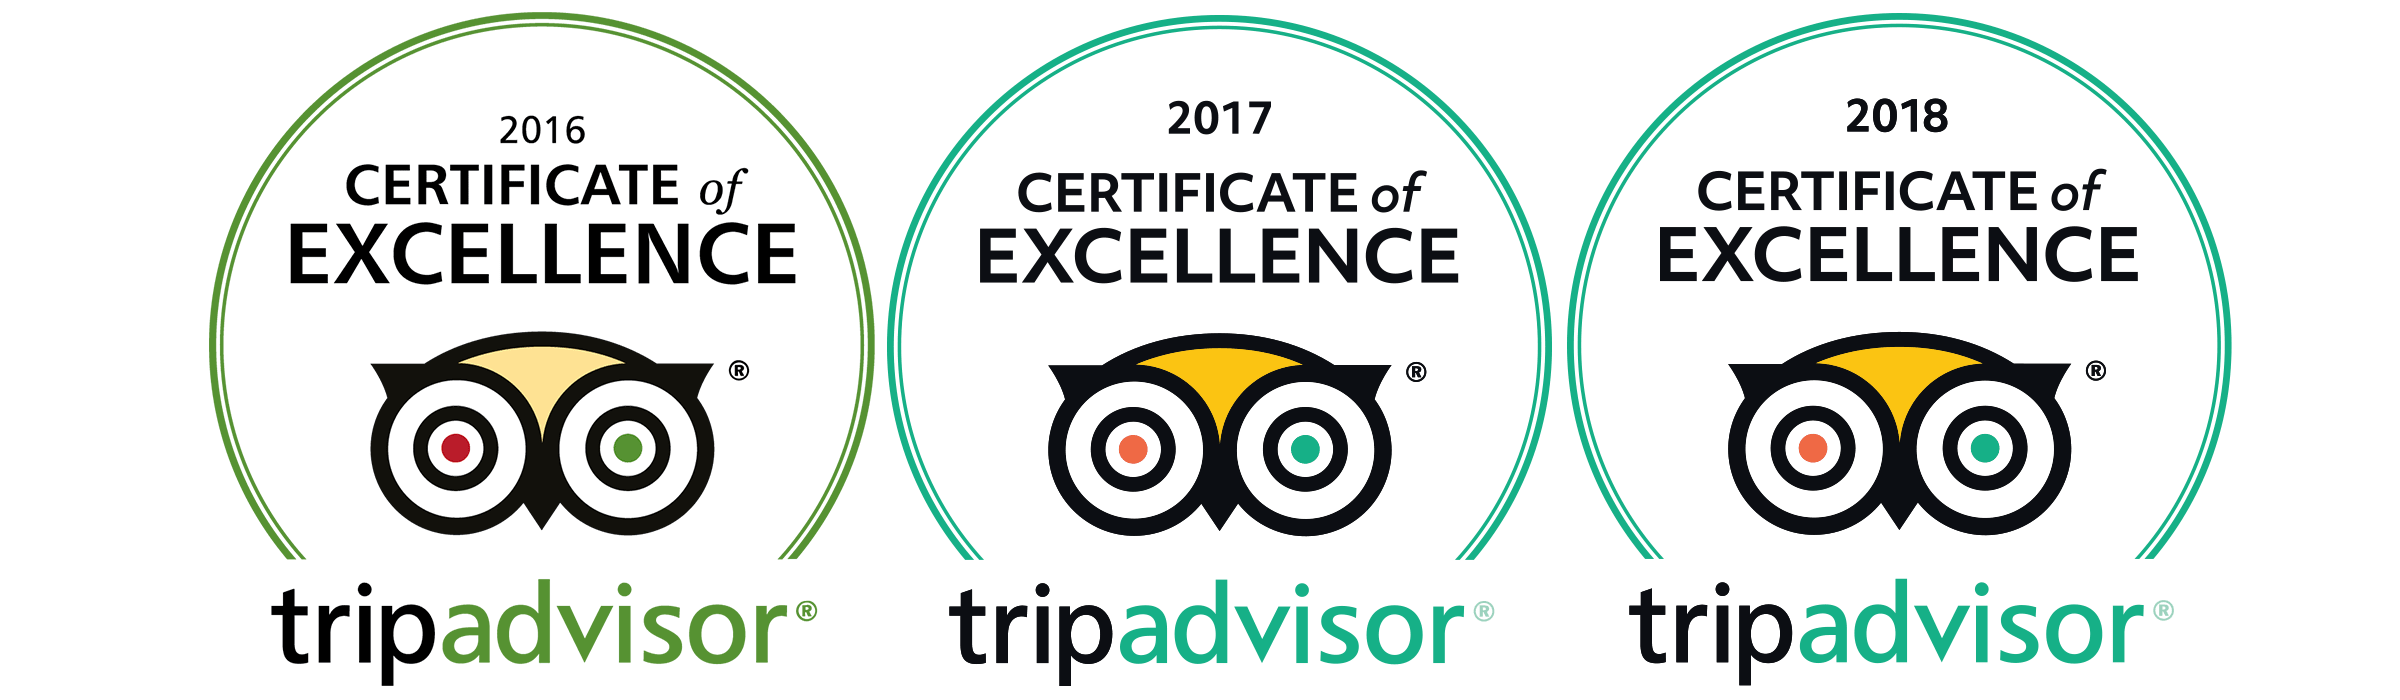 B34 Certificate of Excellence